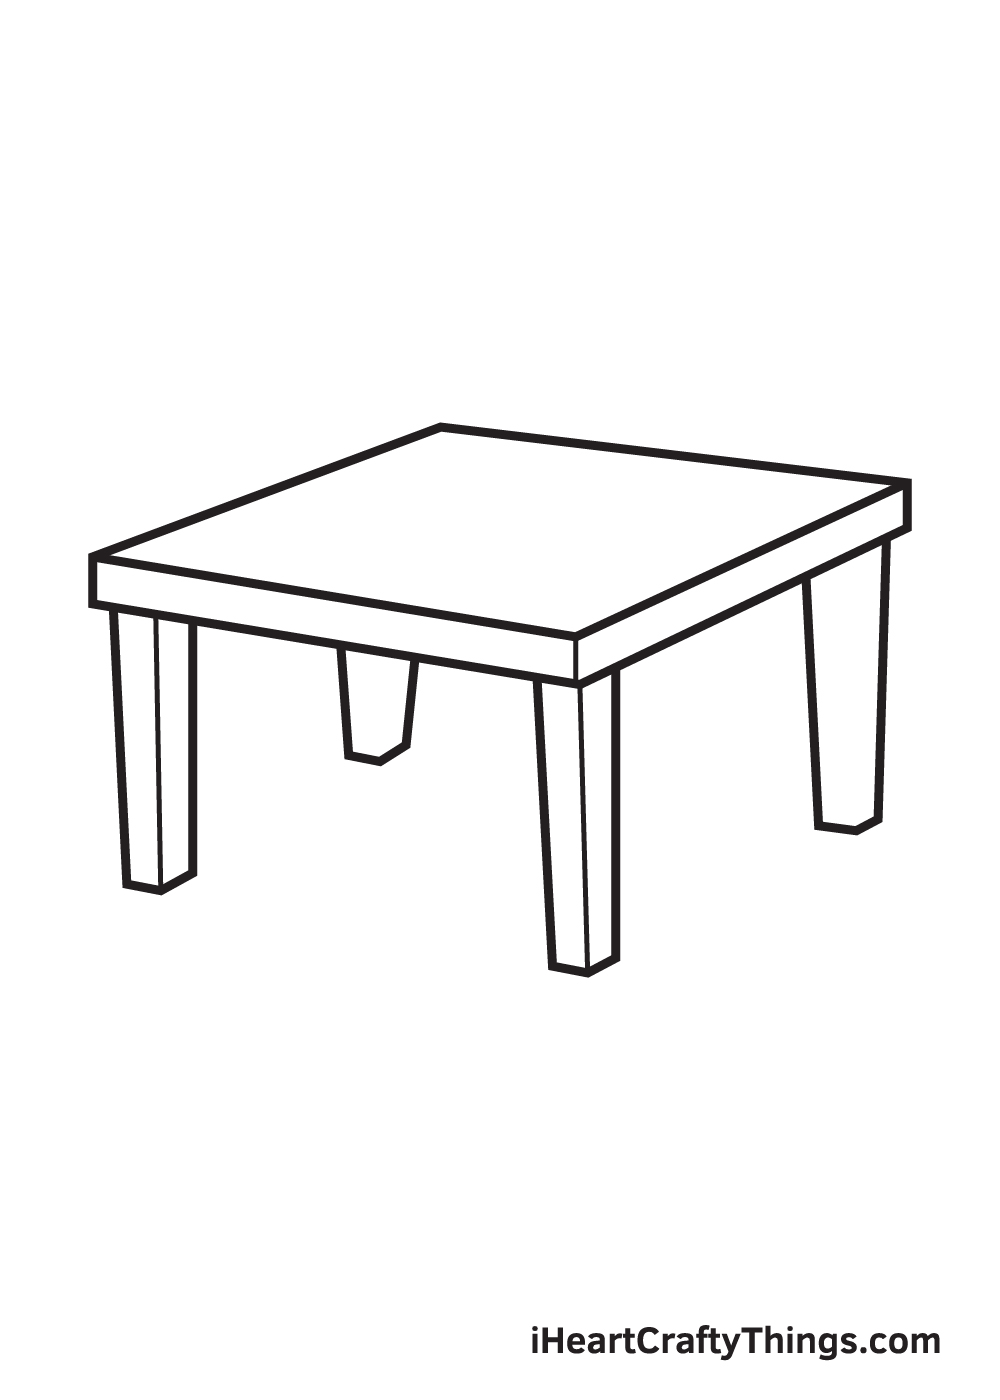 table drawing step 8